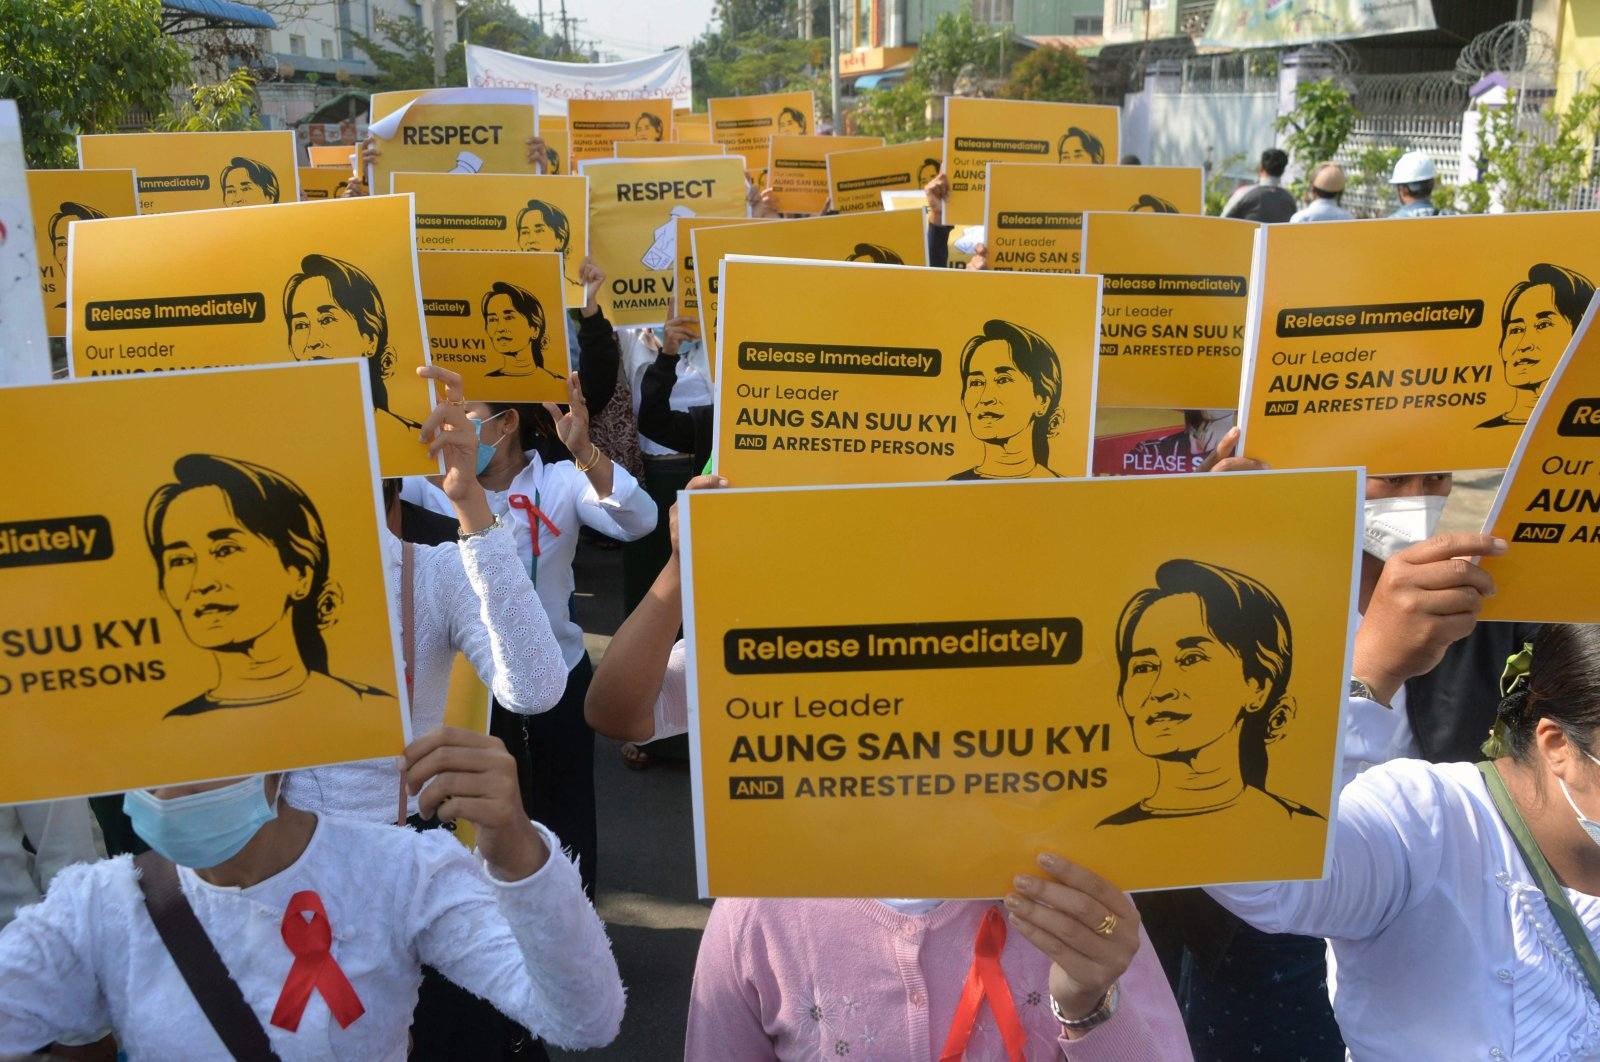 In this file photo, school teachers hold up signs during a demonstration against the military coup in Naypyidaw, Myanmar, photo taken on Feb. 17, 2021. (AFP Photo)